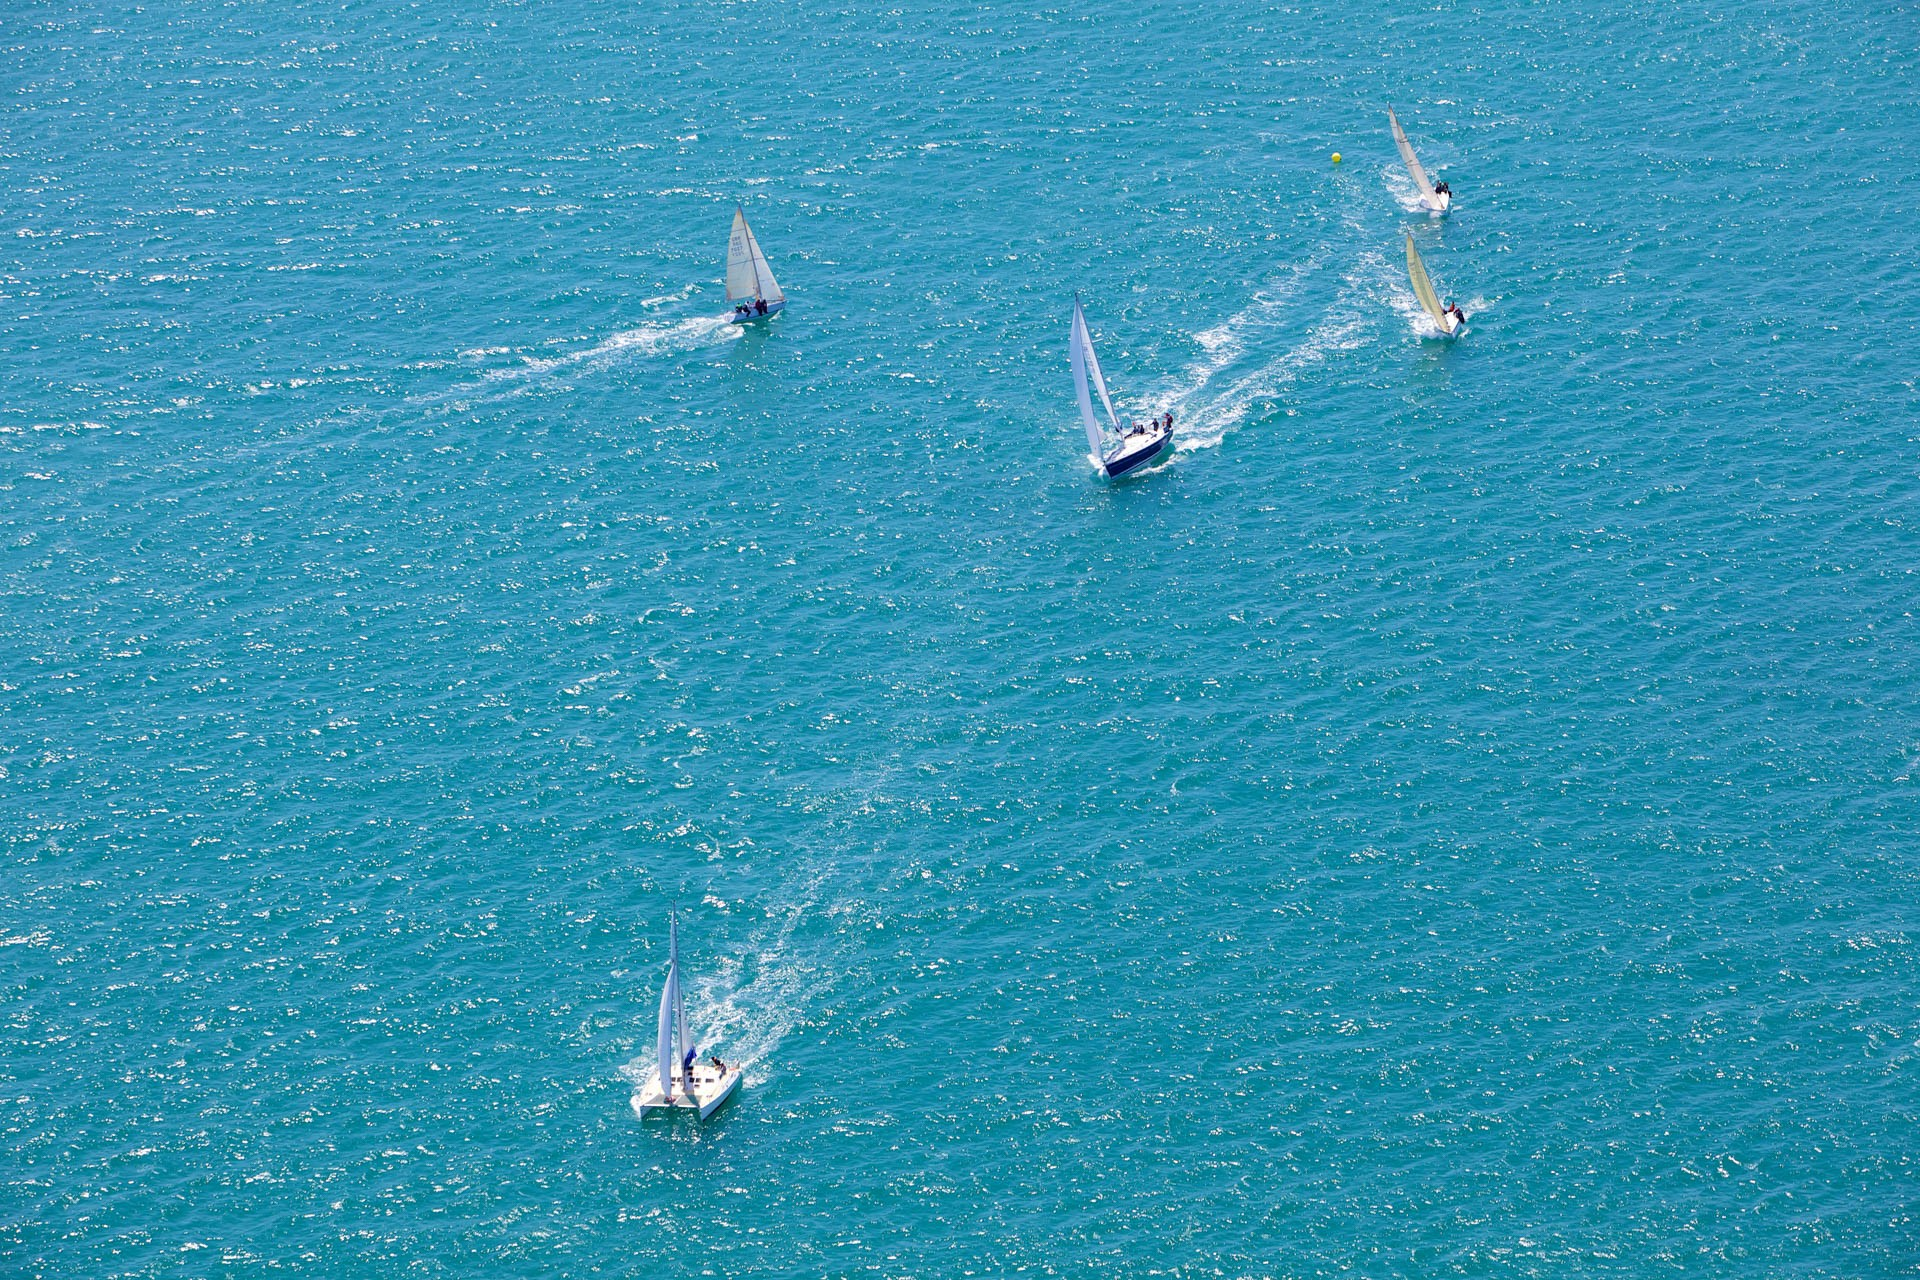 Aerial View of Yachts Racing in the Channel Islands